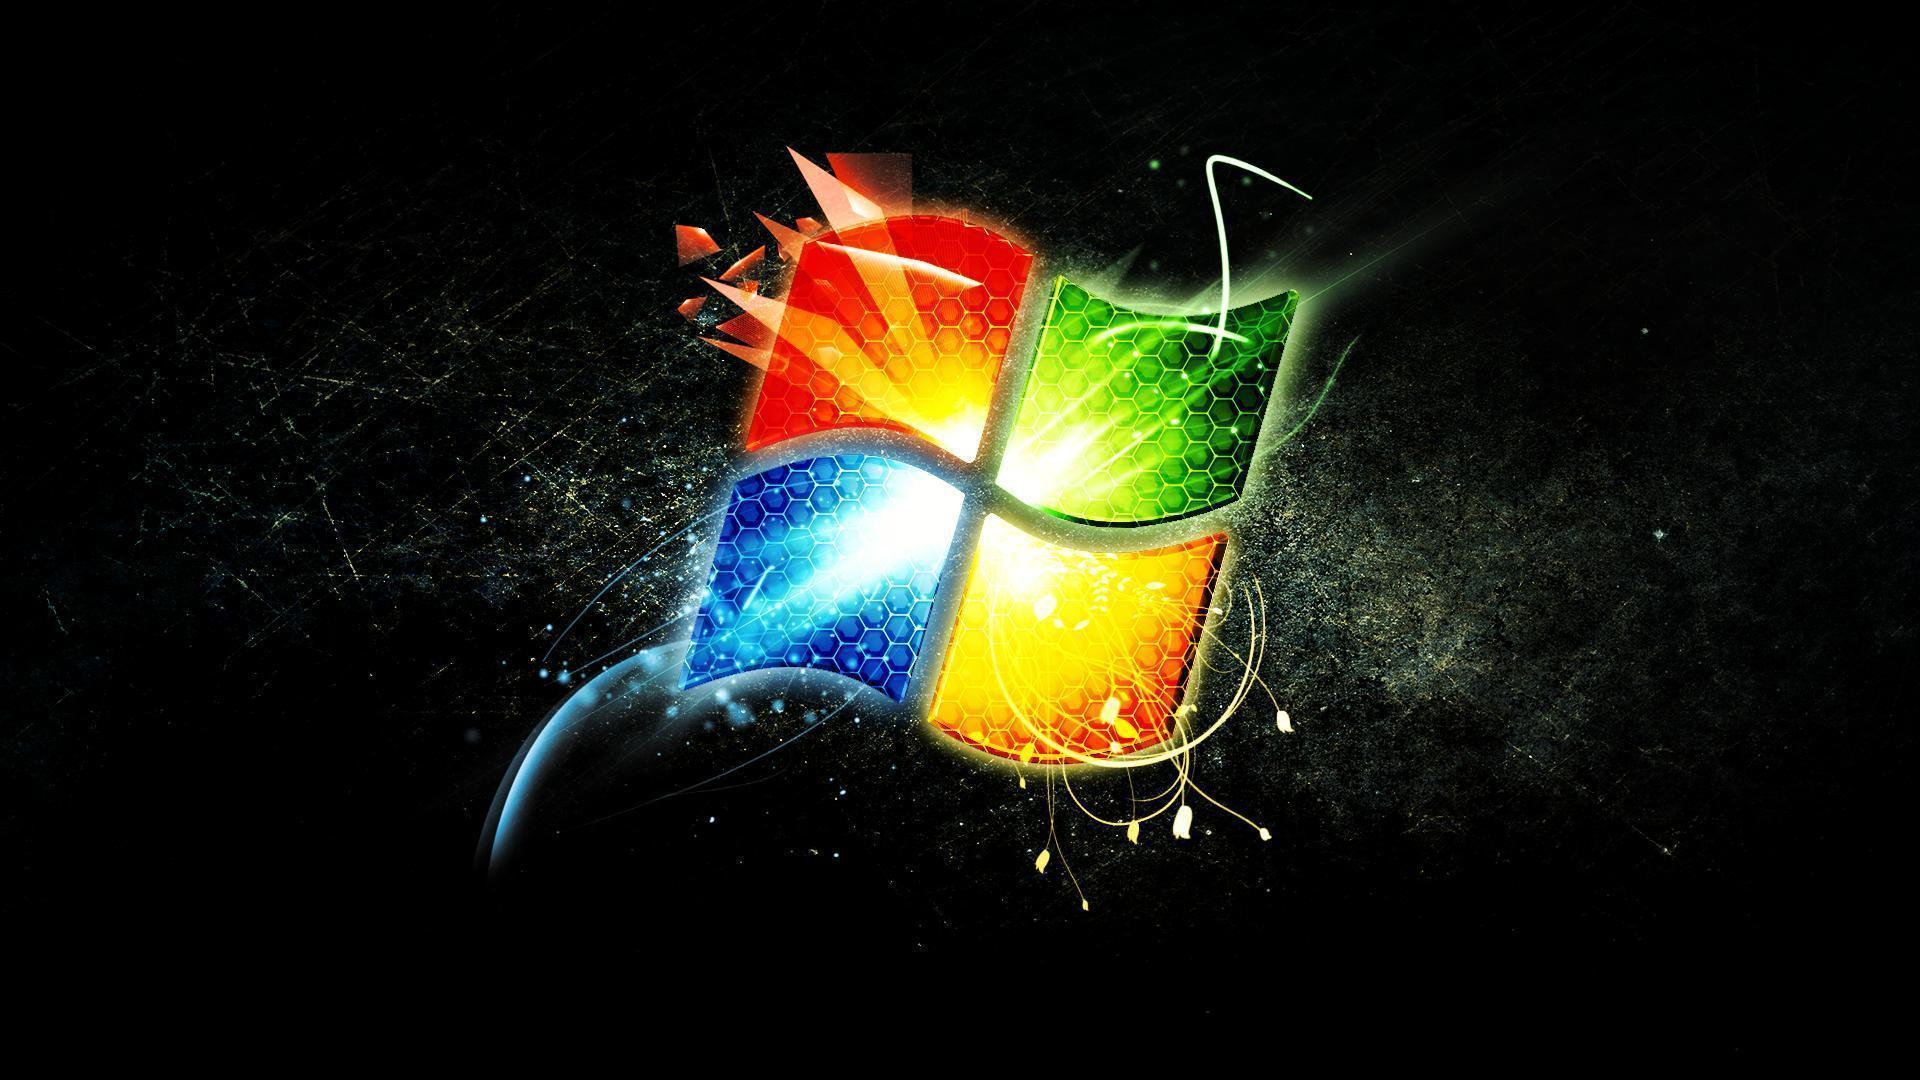 Gif wallpapers windows 7 wallpaper cave for Best quality windows